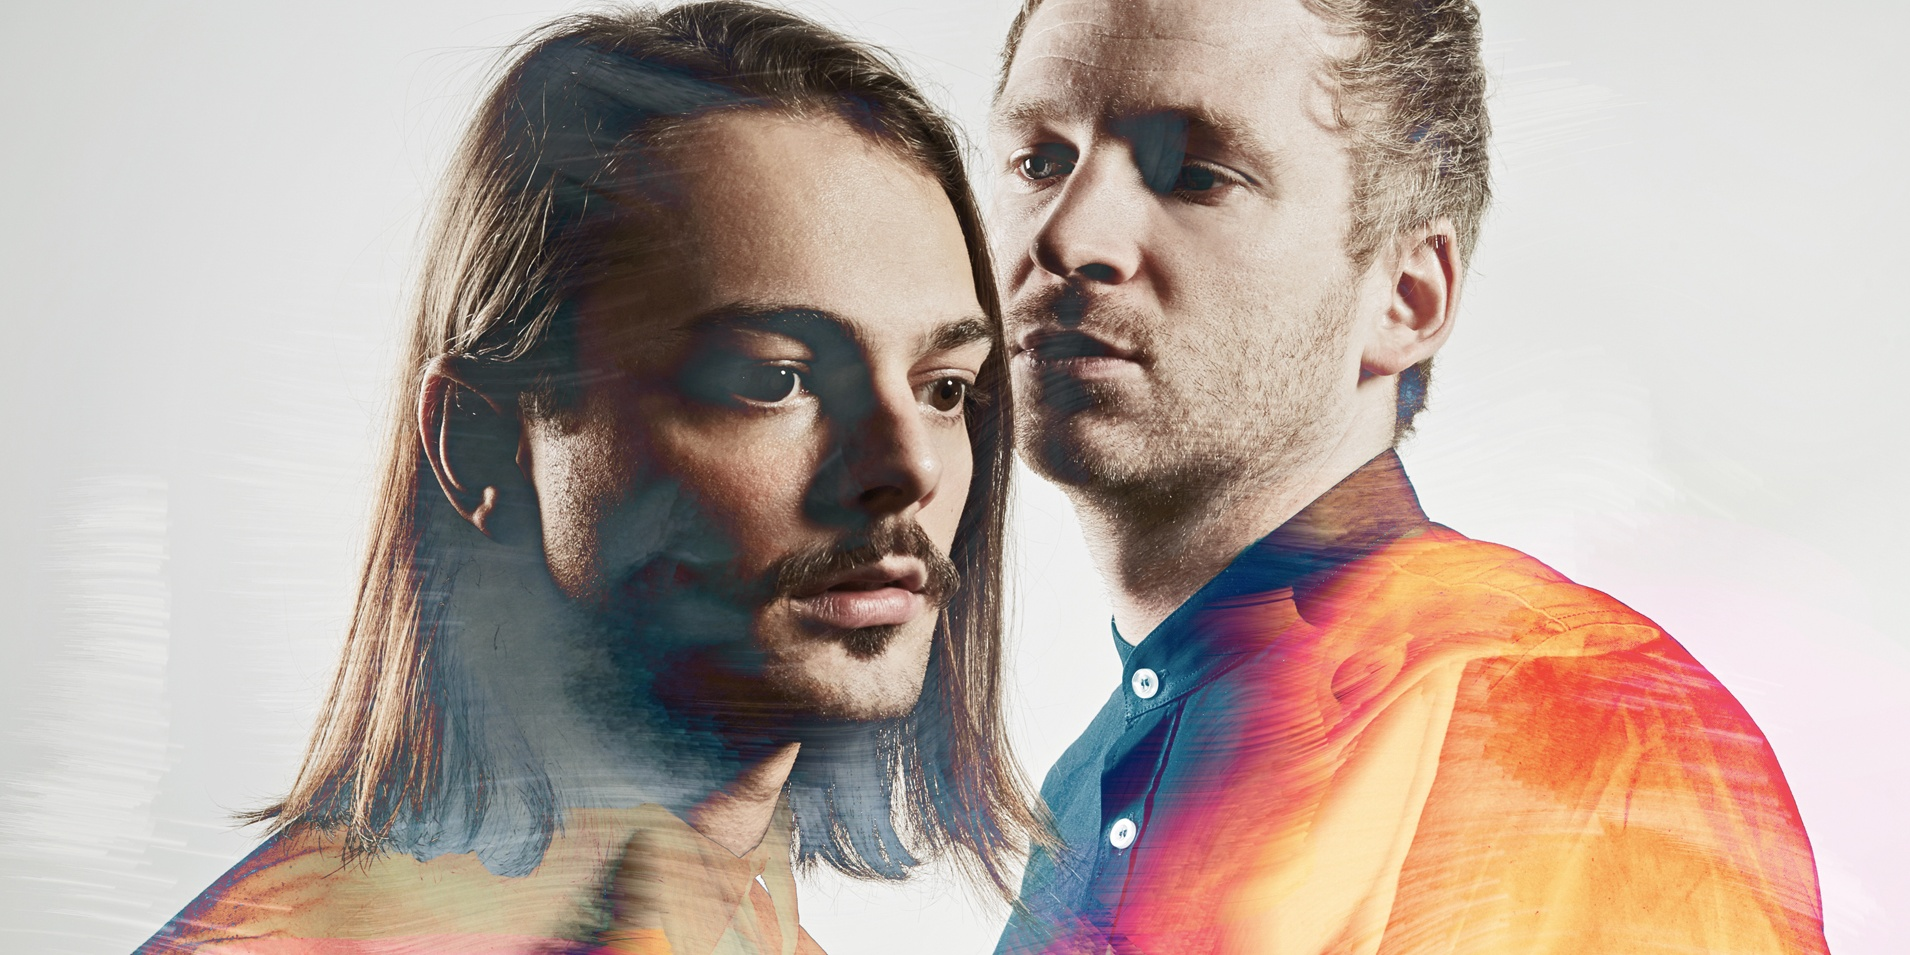 Kiasmos discusses duality, Iceland's music scene and its stereotypes